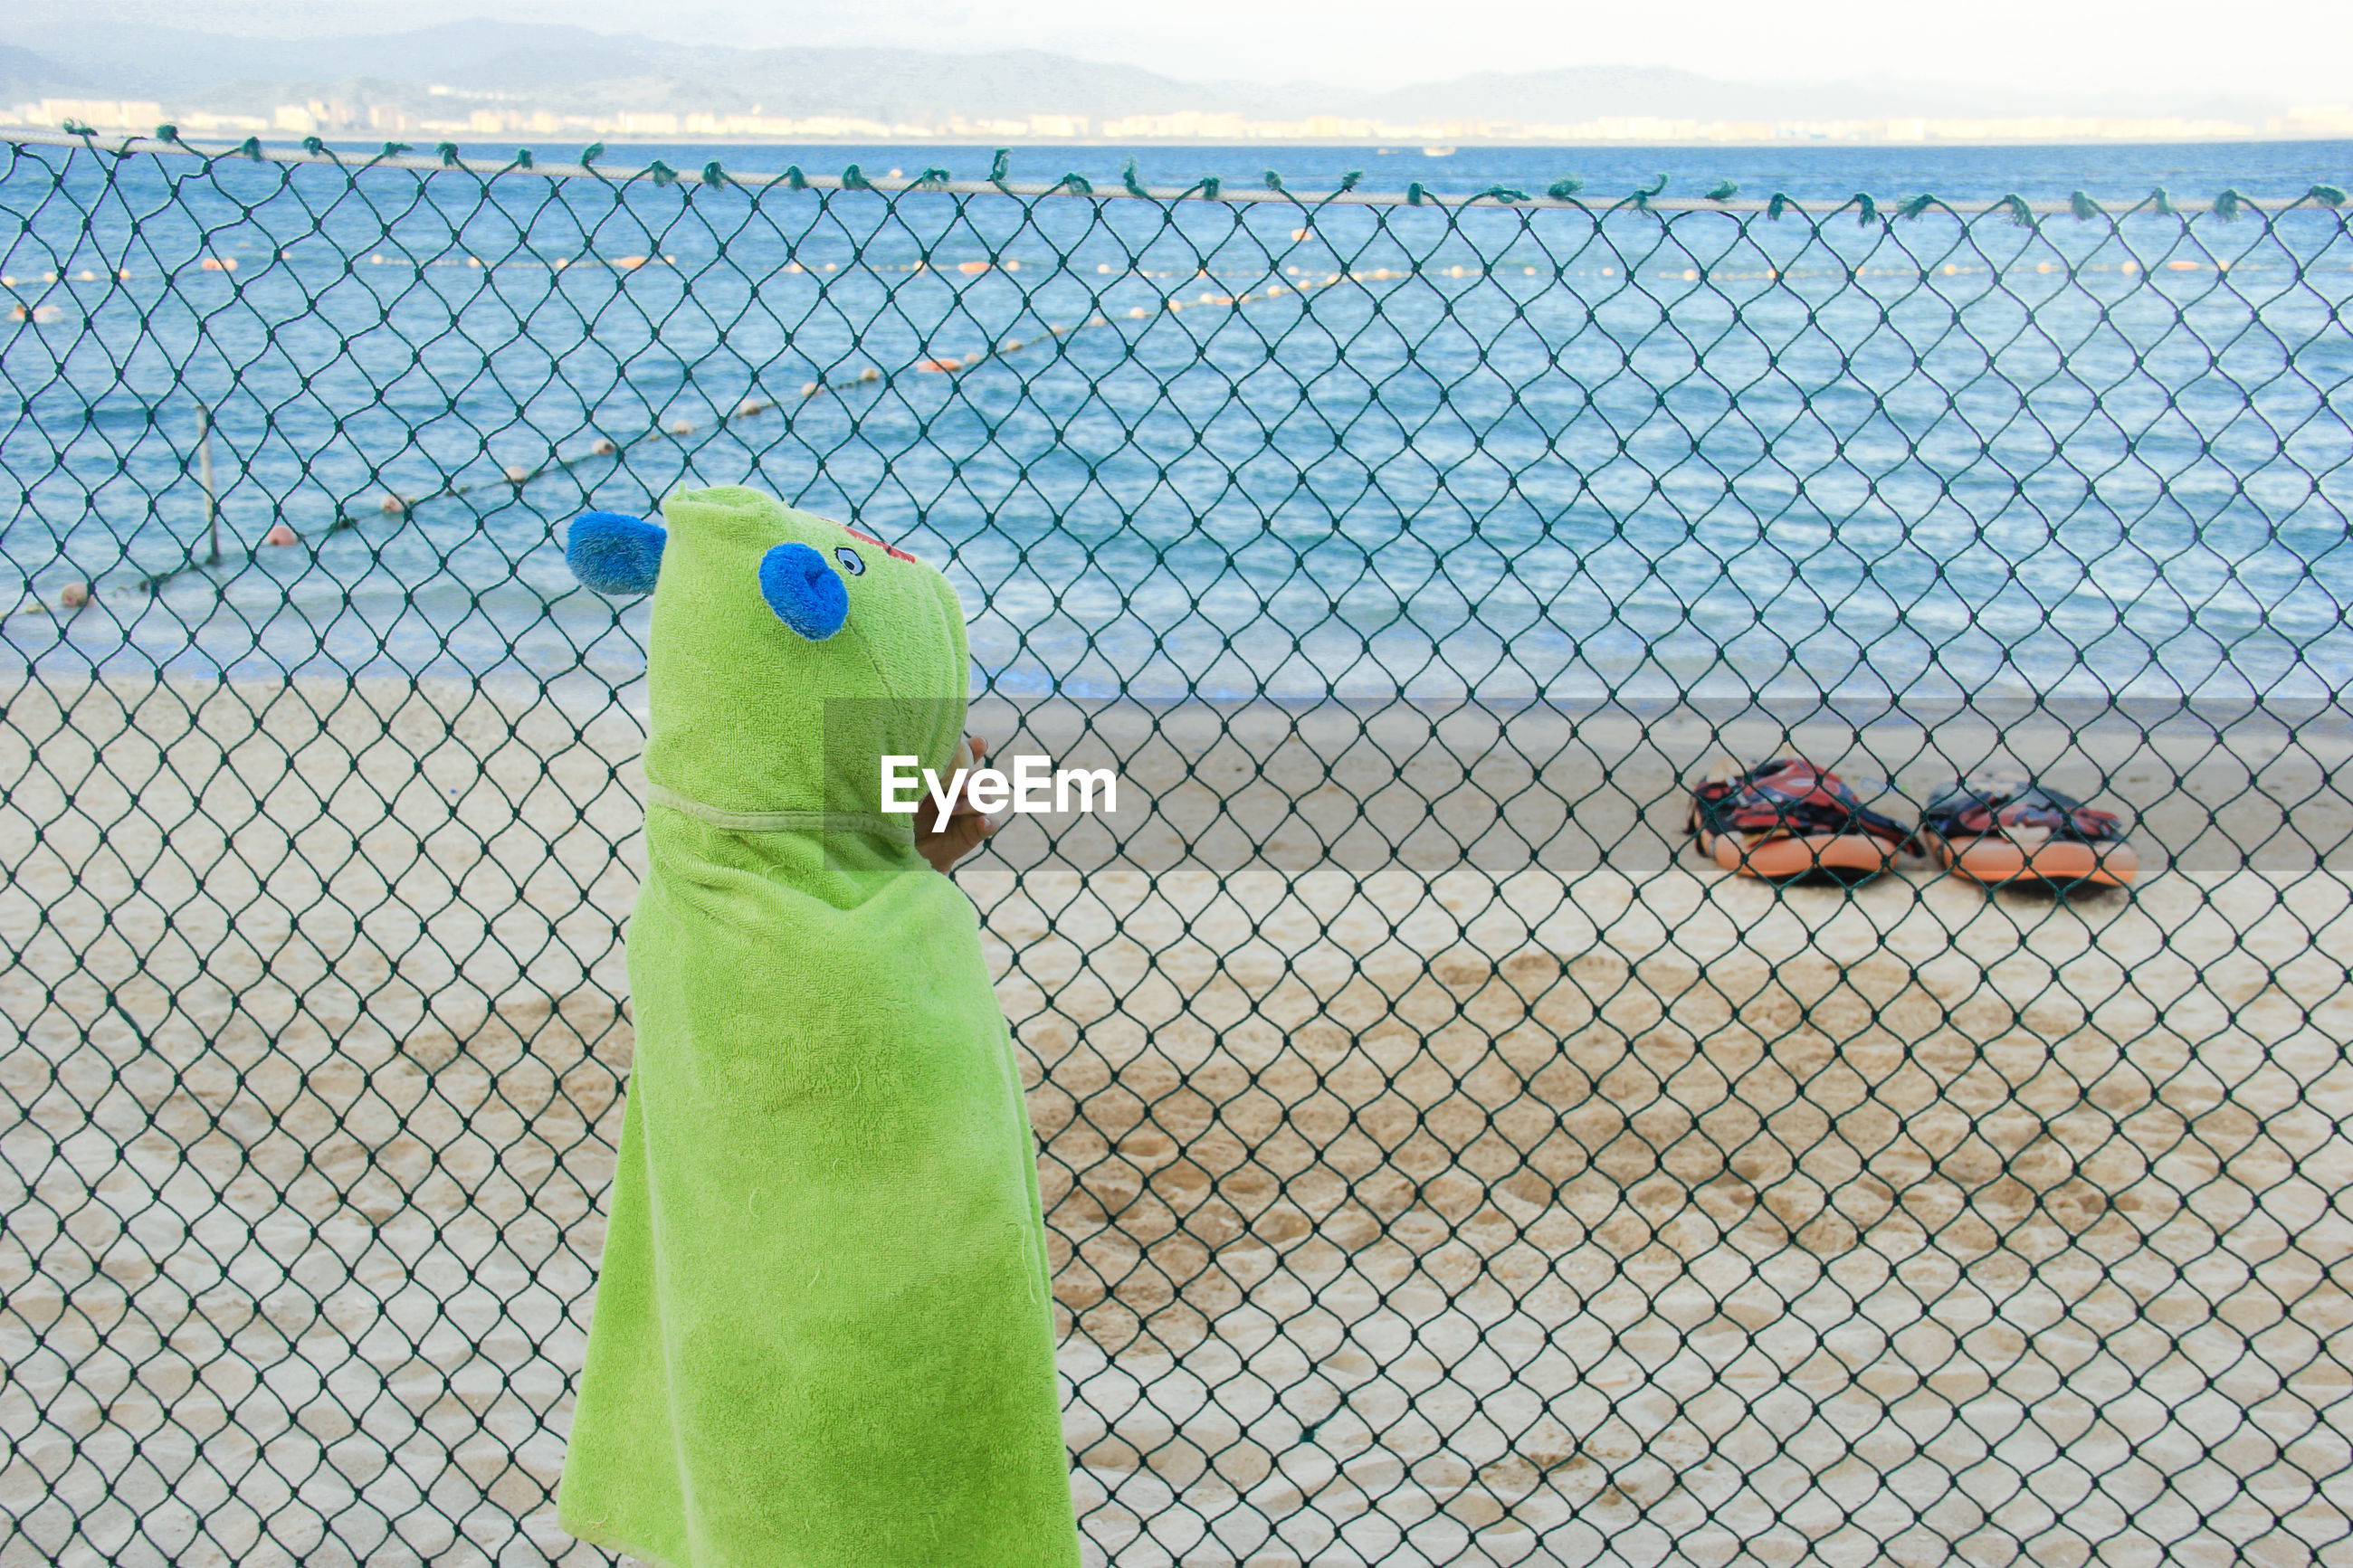 Girl wearing costume standing by chainlink fence against sea